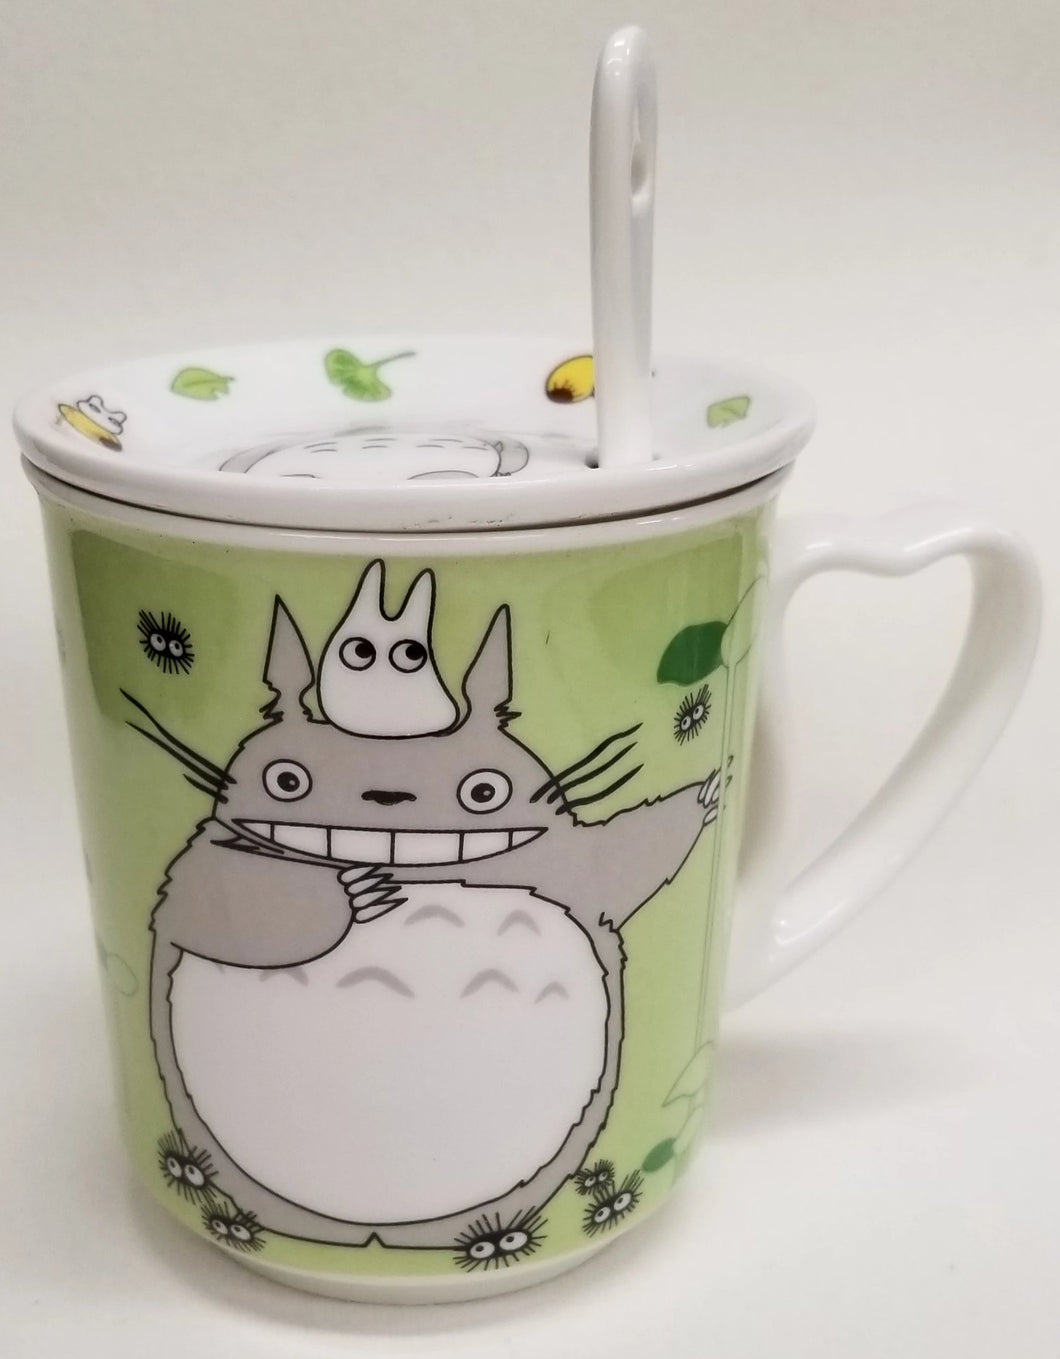 Totoro Ceramic Mug with top and spoon